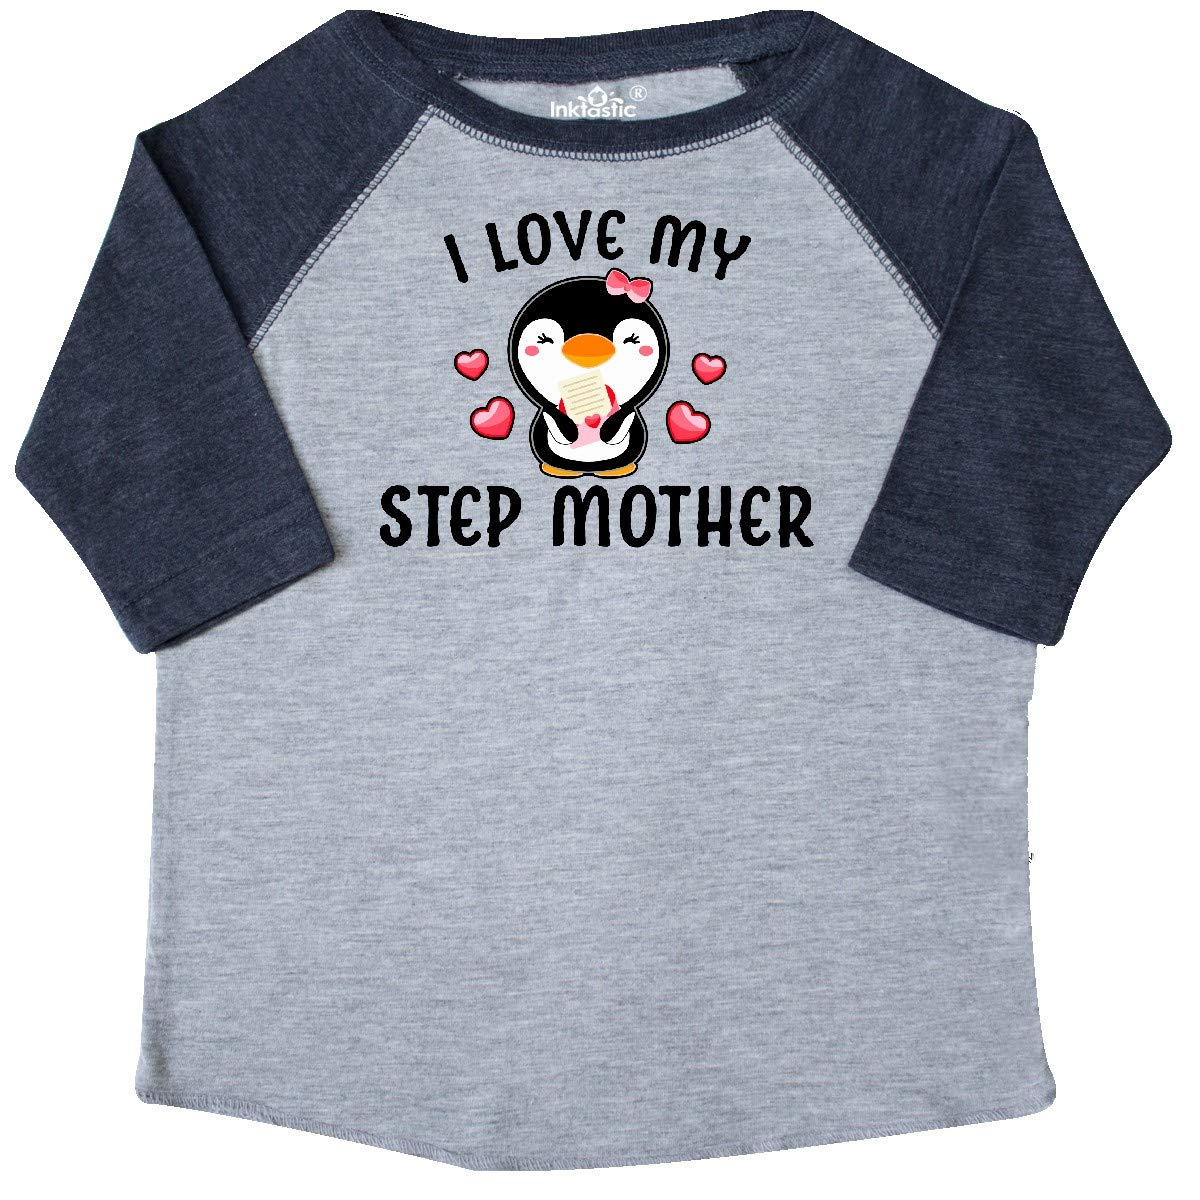 inktastic I Love My Step Mother with Cute Penguin and Hearts Toddler T-Shirt